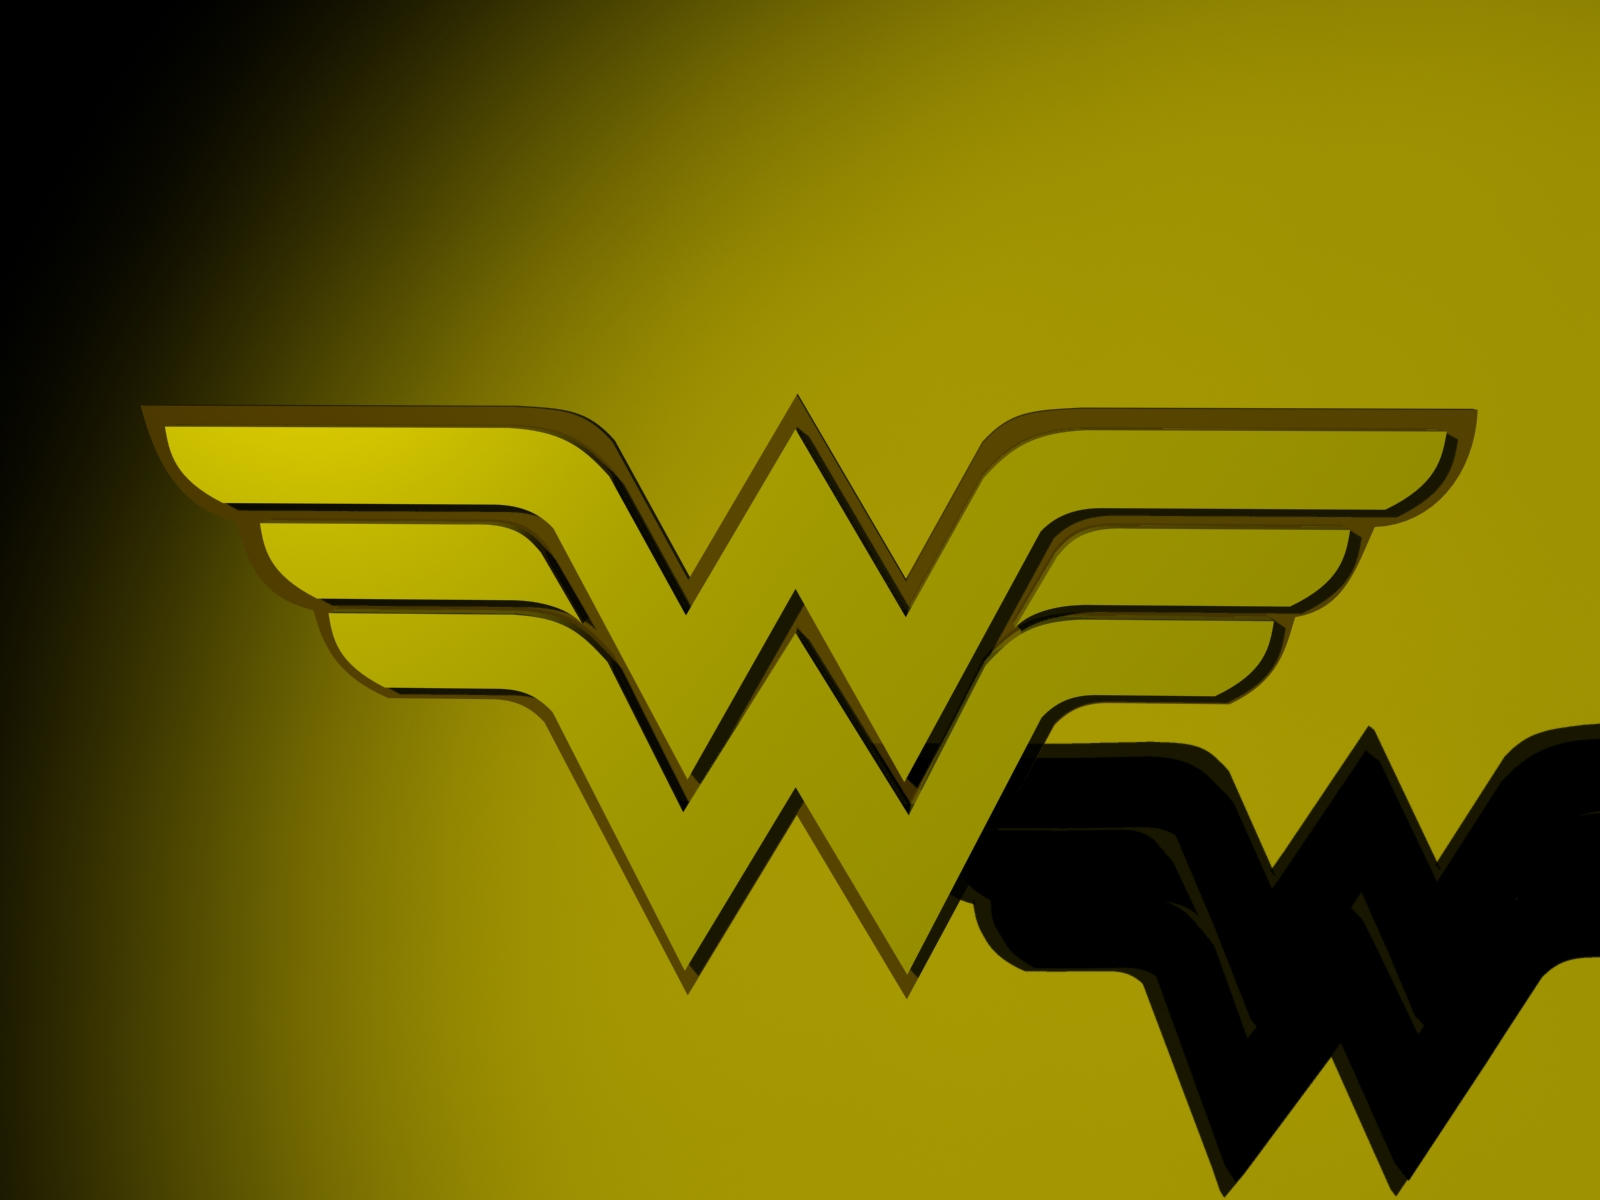 Wonder woman logo by user 01 on deviantart wonder woman logo by user 01 pronofoot35fo Image collections